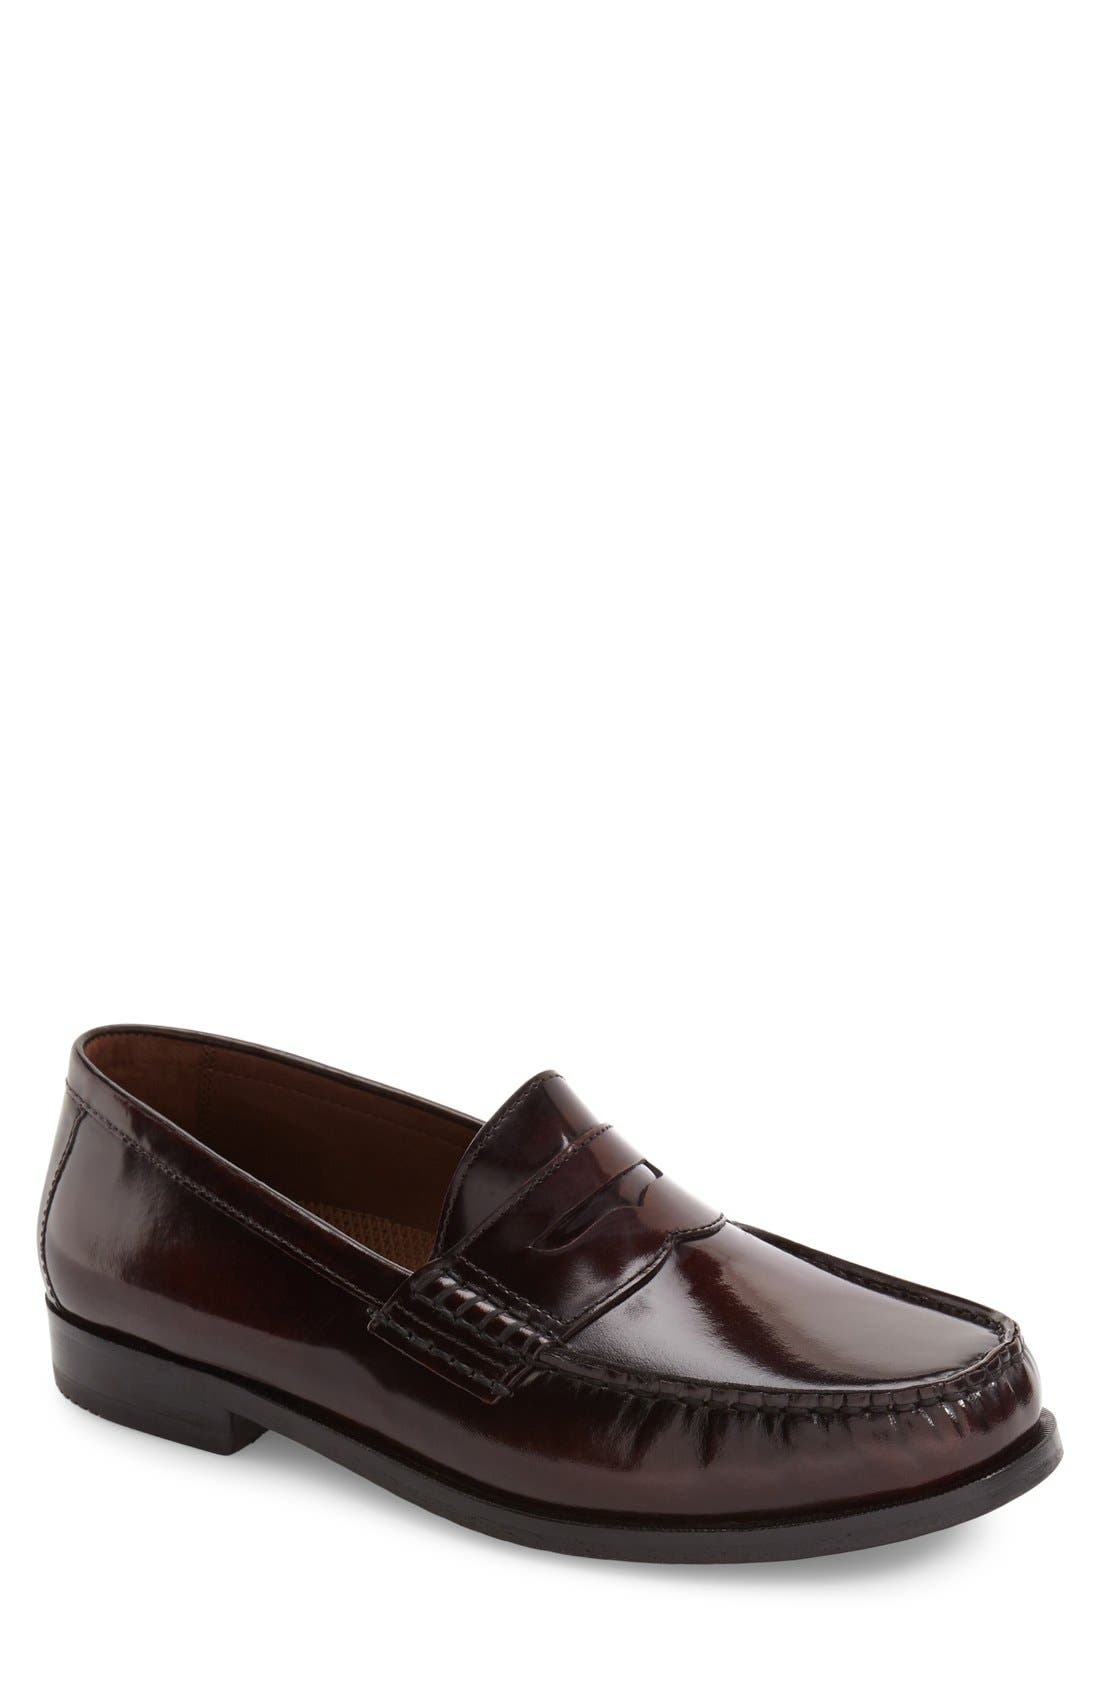 Pannell Penny Loafer,                         Main,                         color, 933